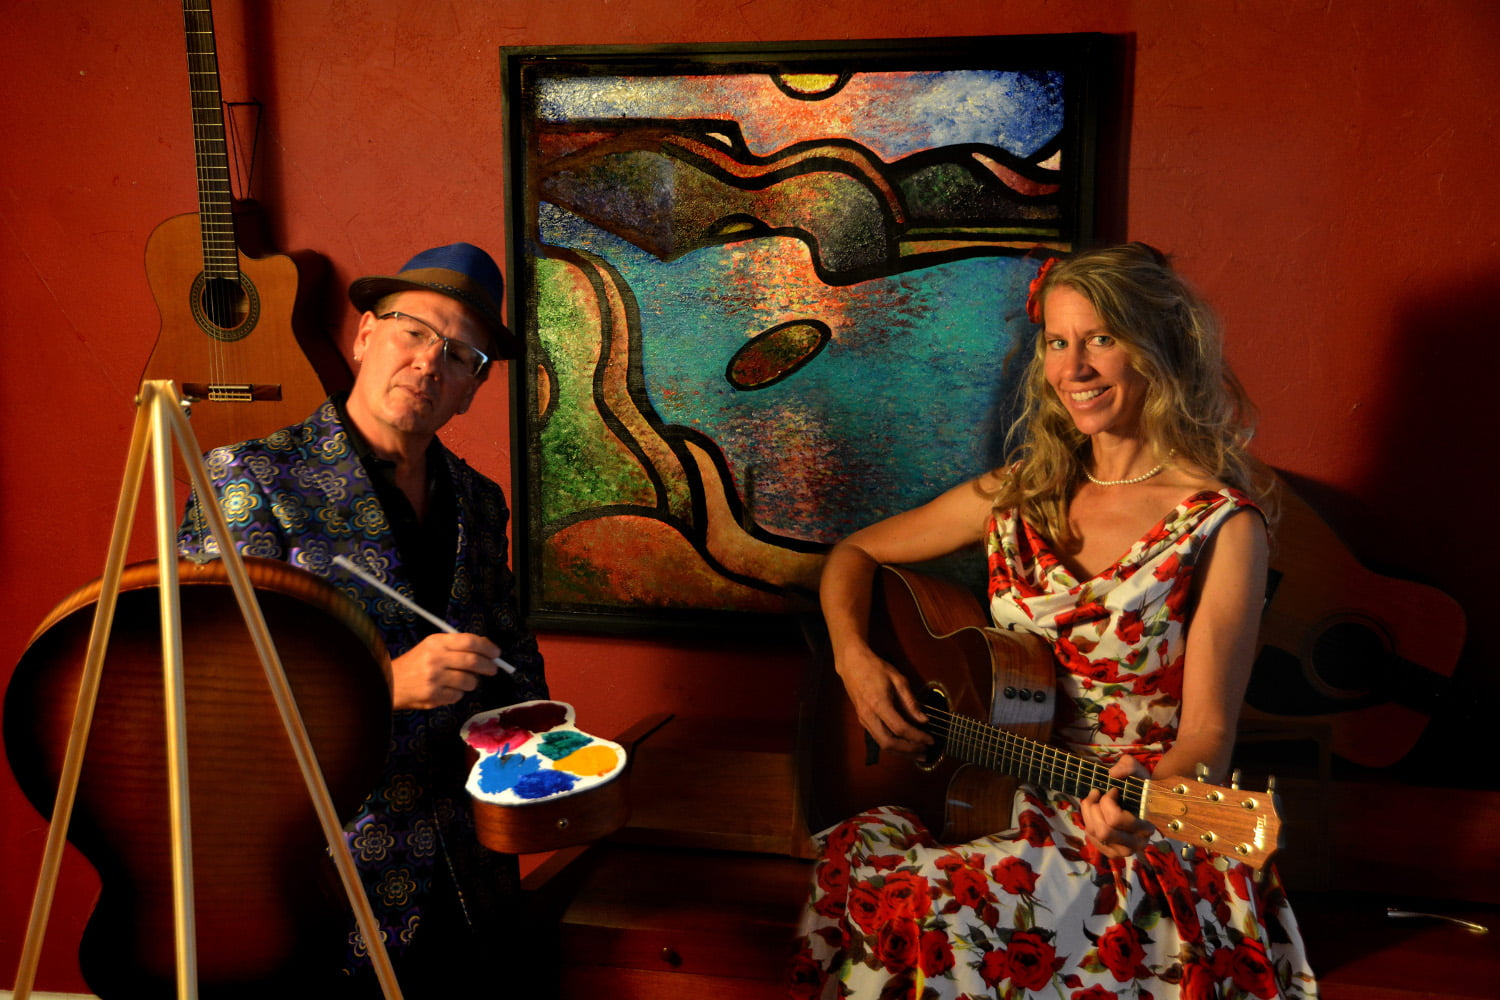 The Landscape of Guitar: Animated Painting Concert Experience